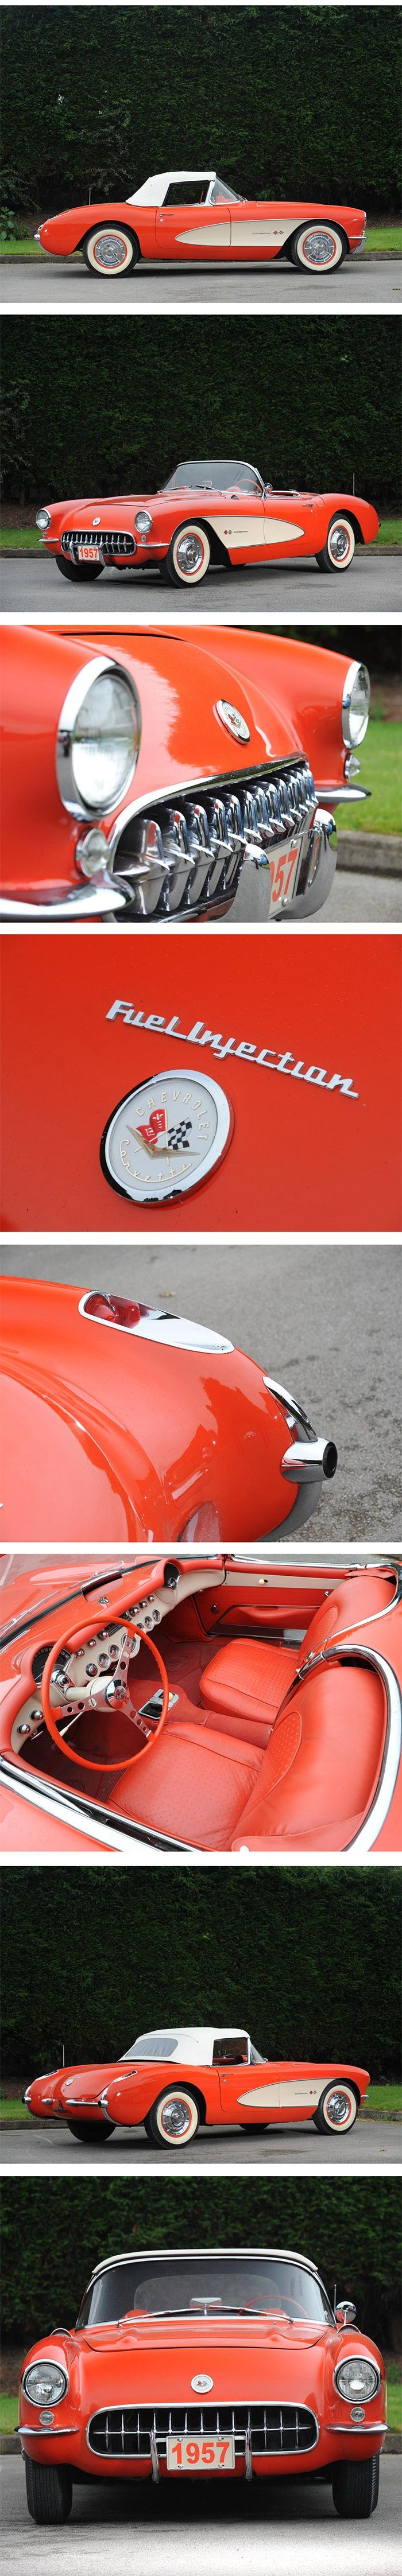 Cars and car stuff: 1957 Chevrolet Corvette Roadster — I've seen 4, touched 2, got to drive 1. And I put a model one together. Pure beauty! Nathan McGinley